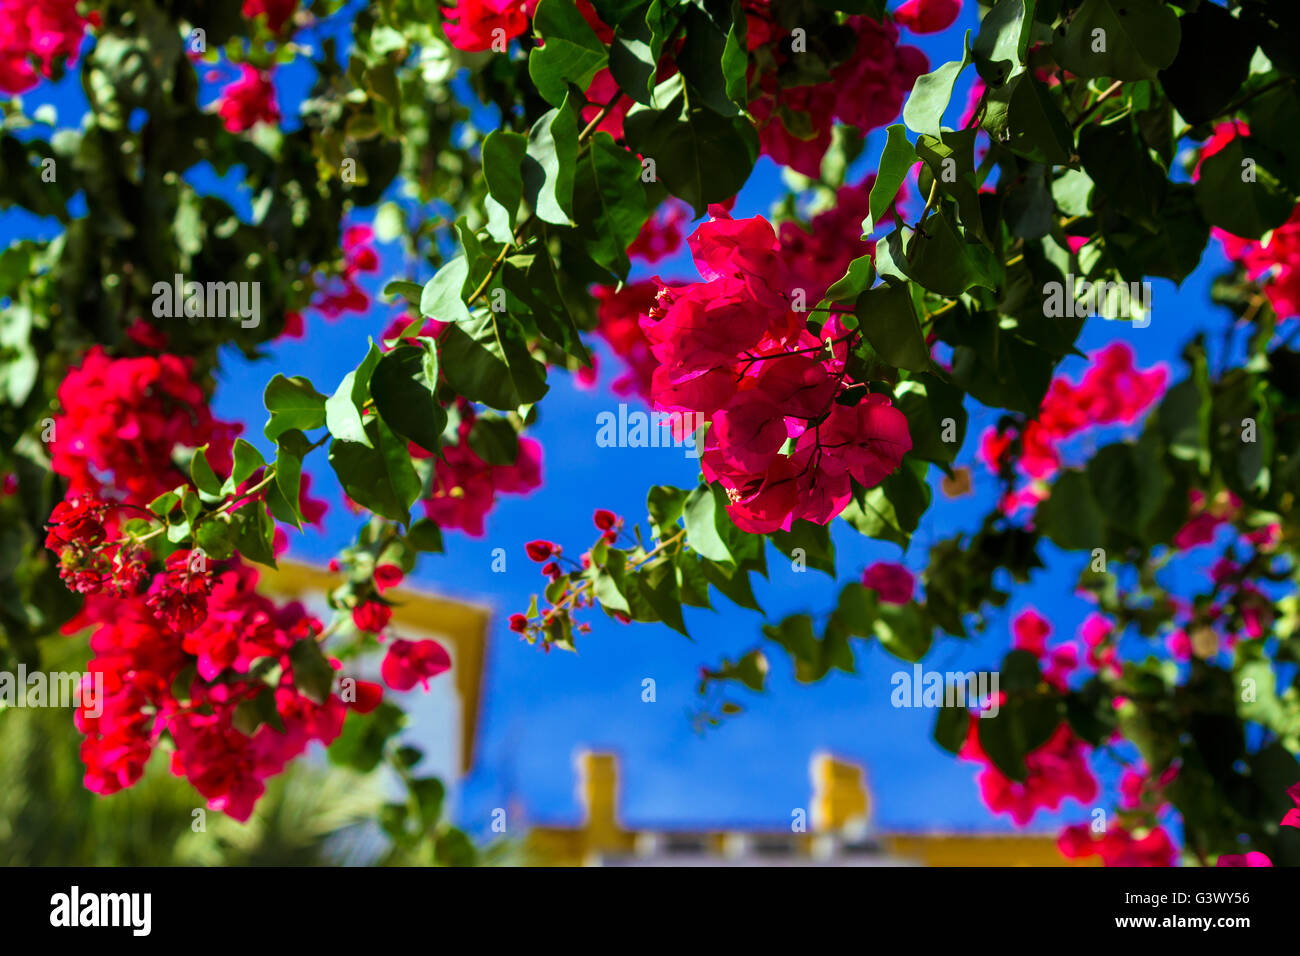 Bright red bougainvillea flowers - Stock Image